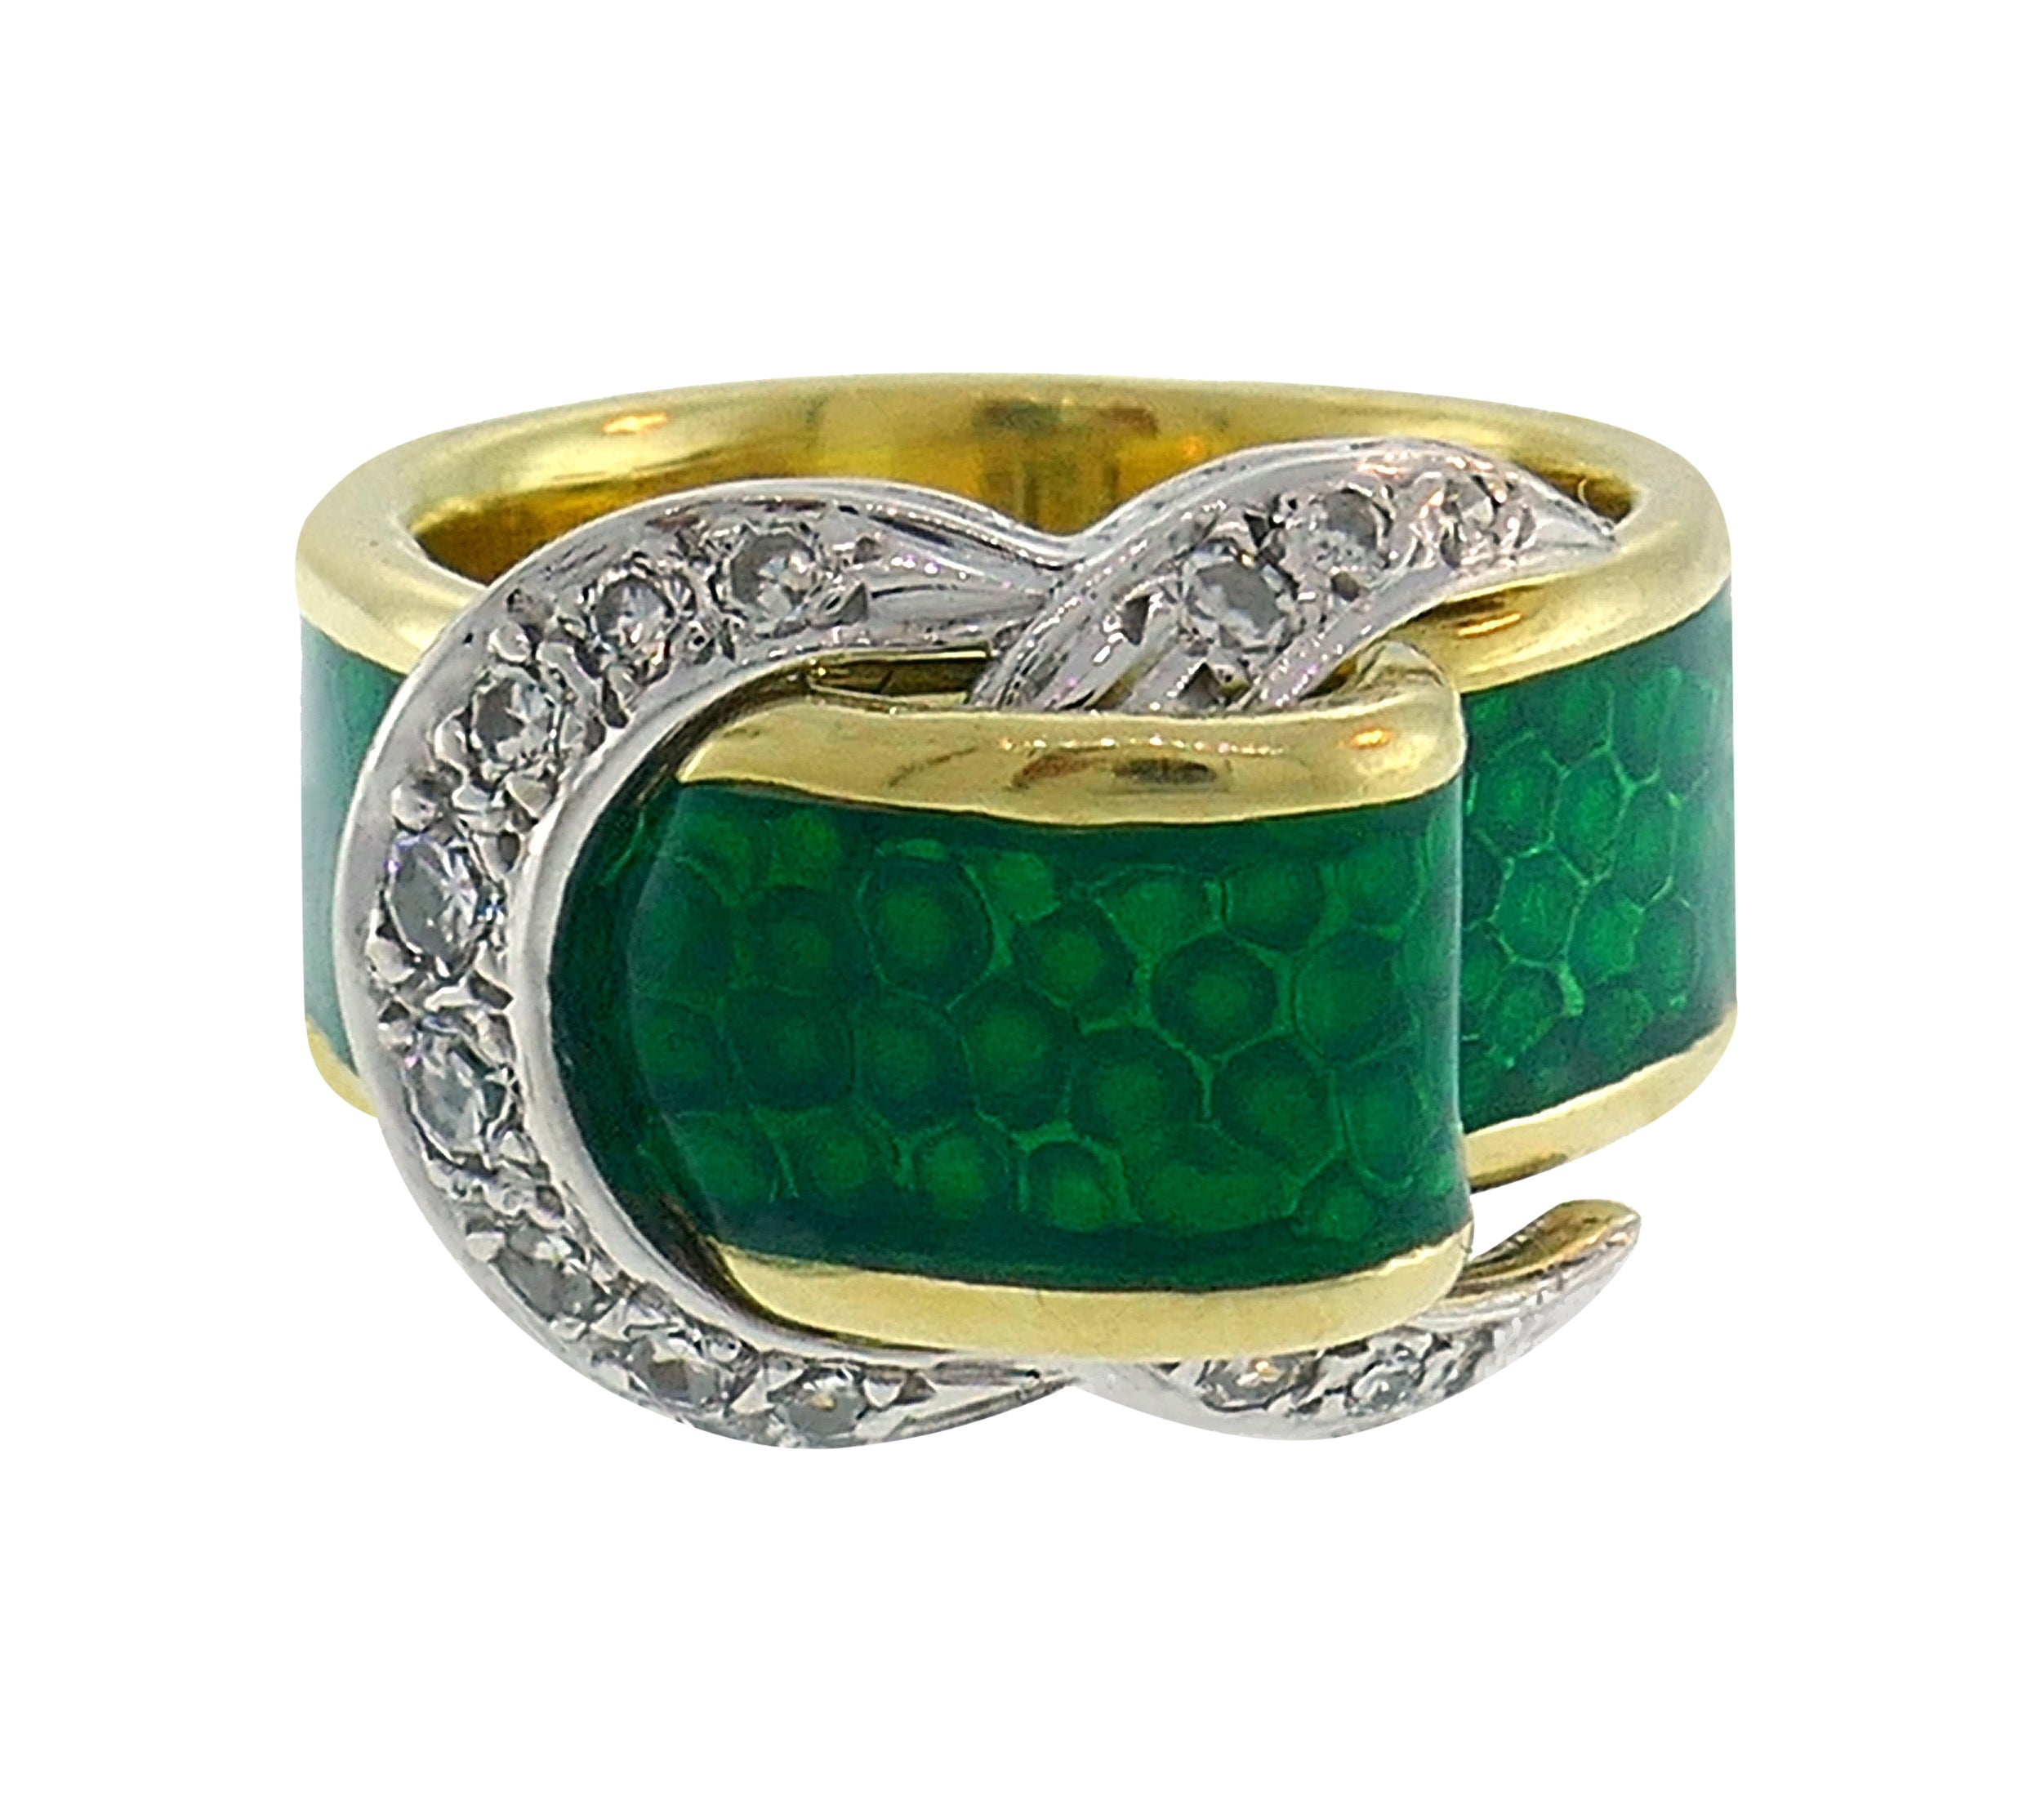 Diamond Enamel Gold Buckle Ring Art Nouveau, Deco